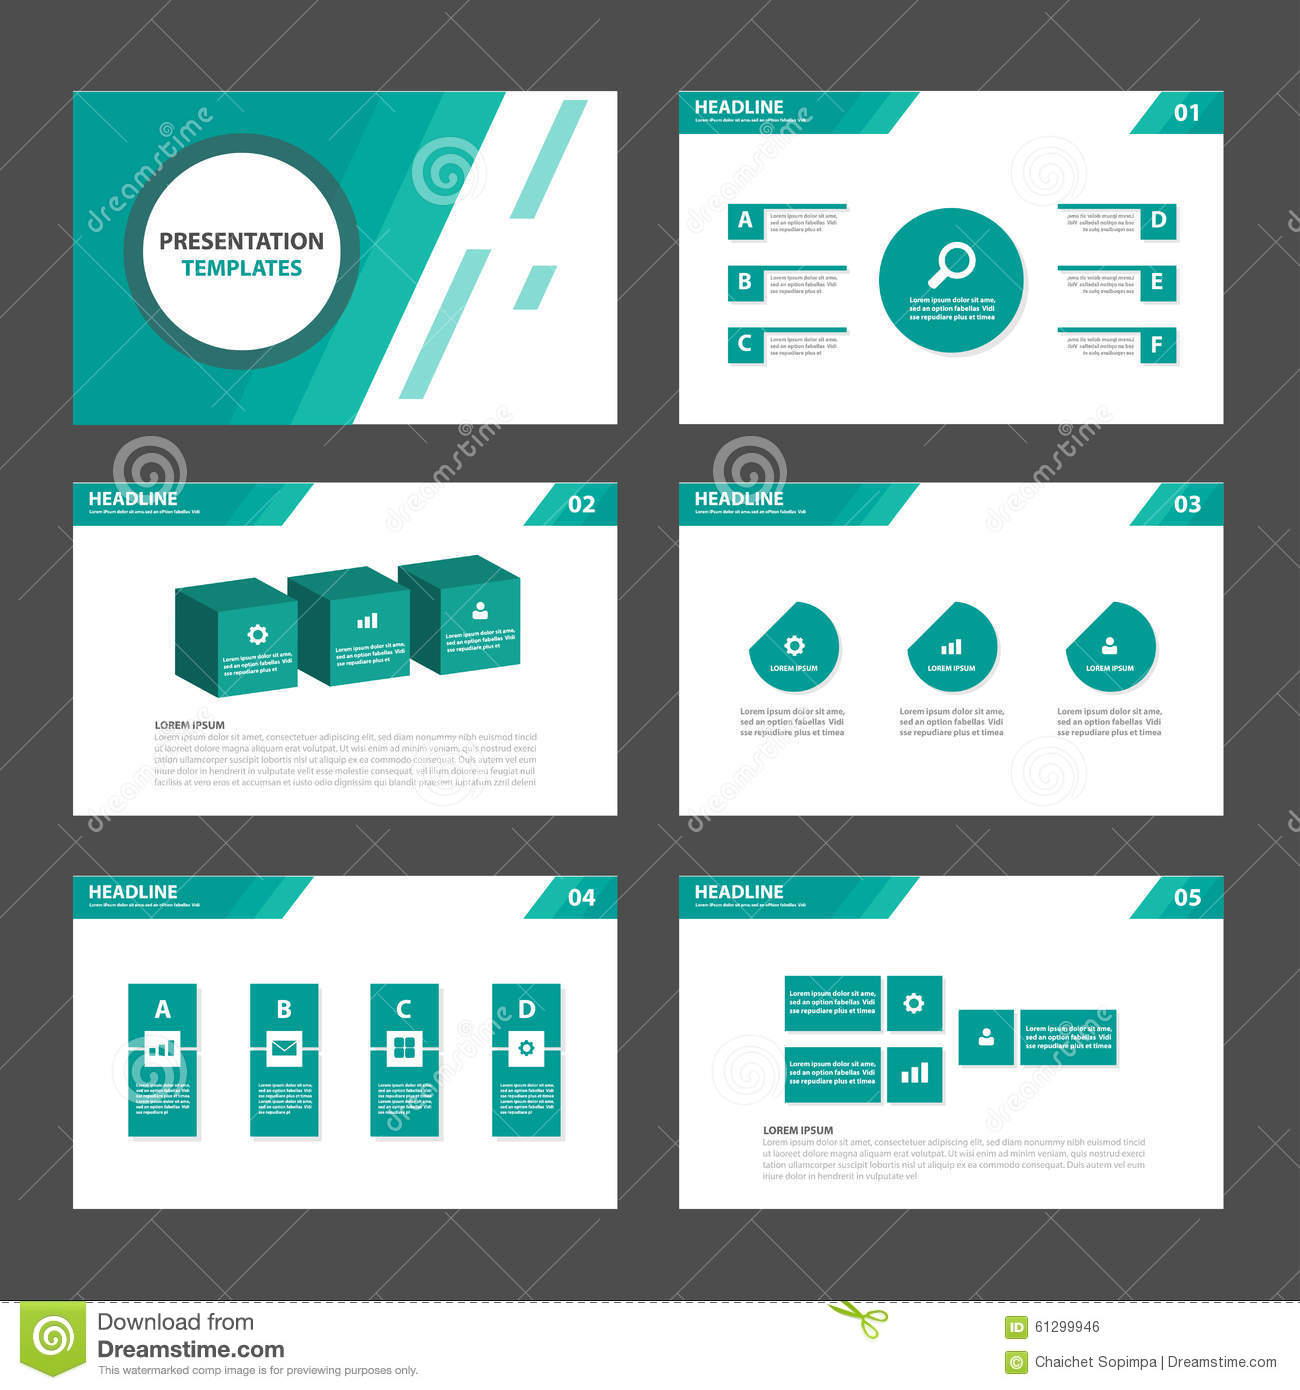 6 green Multipurpose Infographic elements and icon presentation template flat design set advertising marketing brochure flye